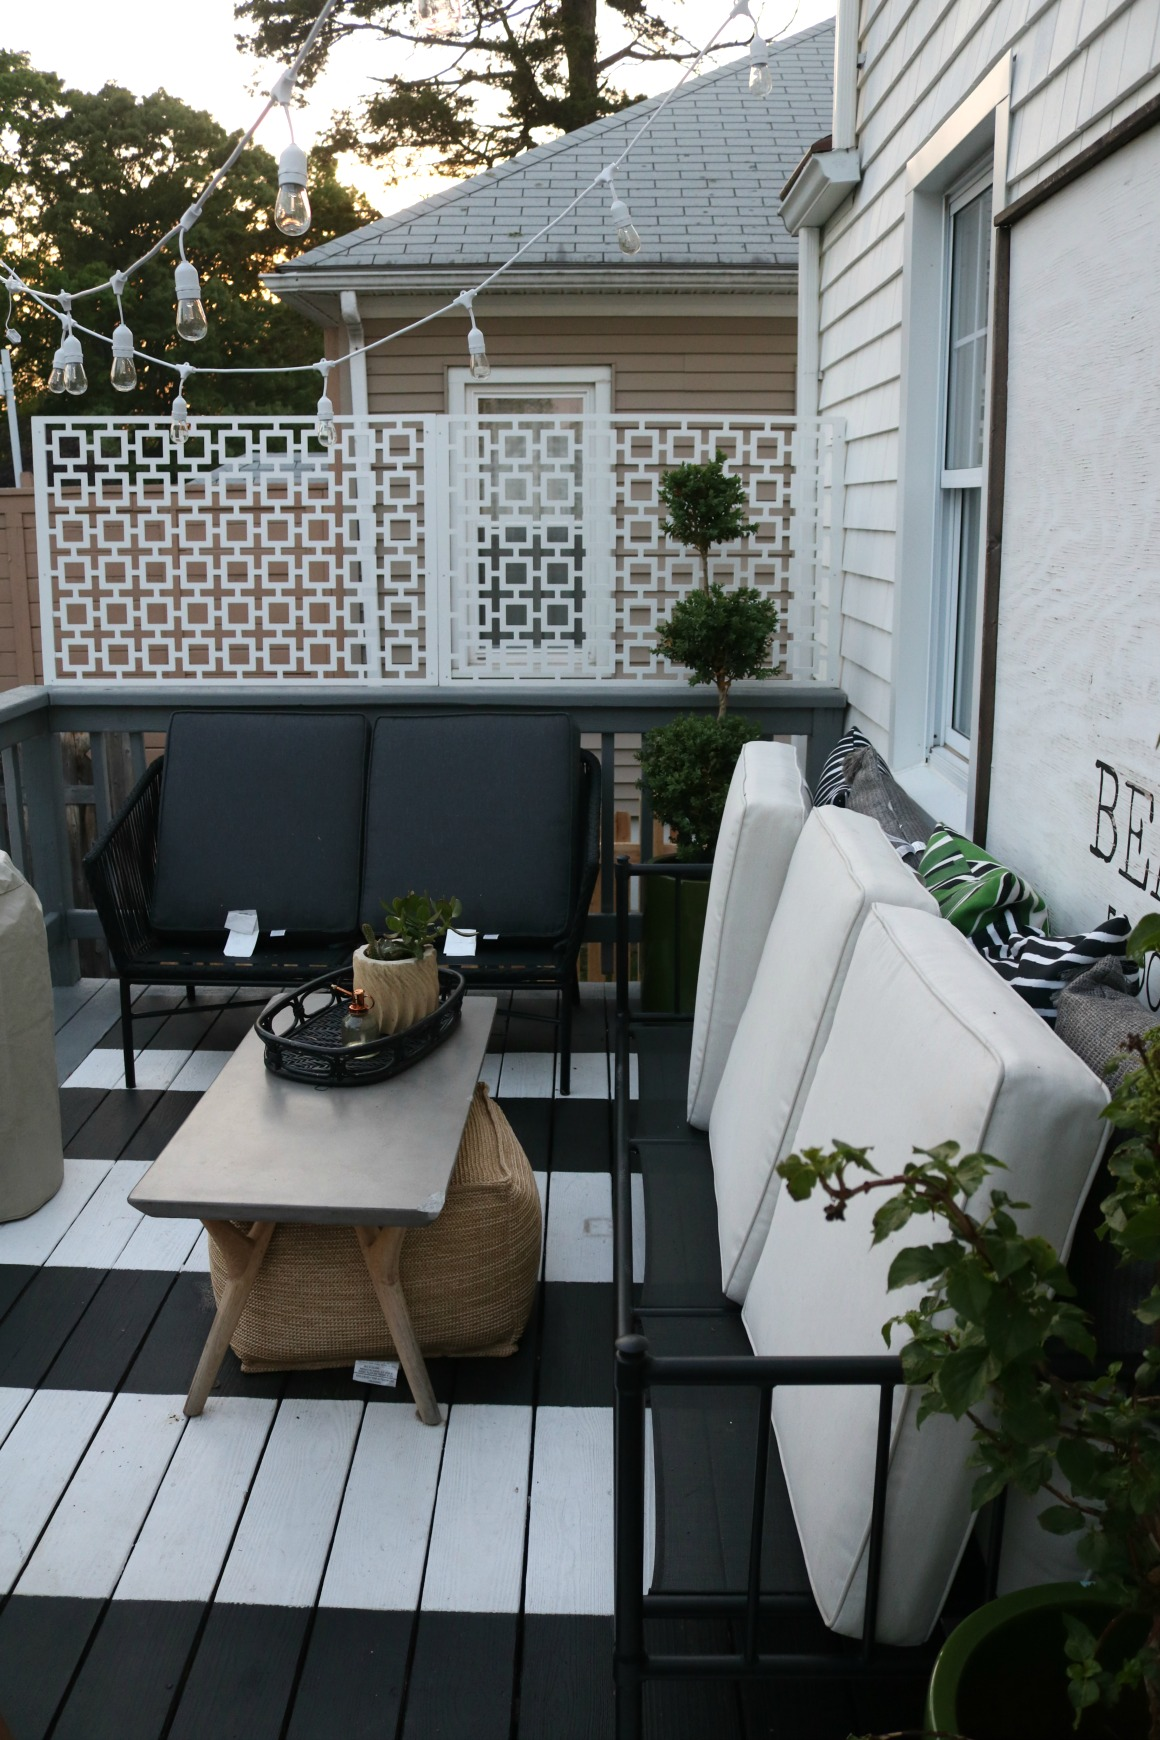 How we Clean and Protect our Outdoor Cushions